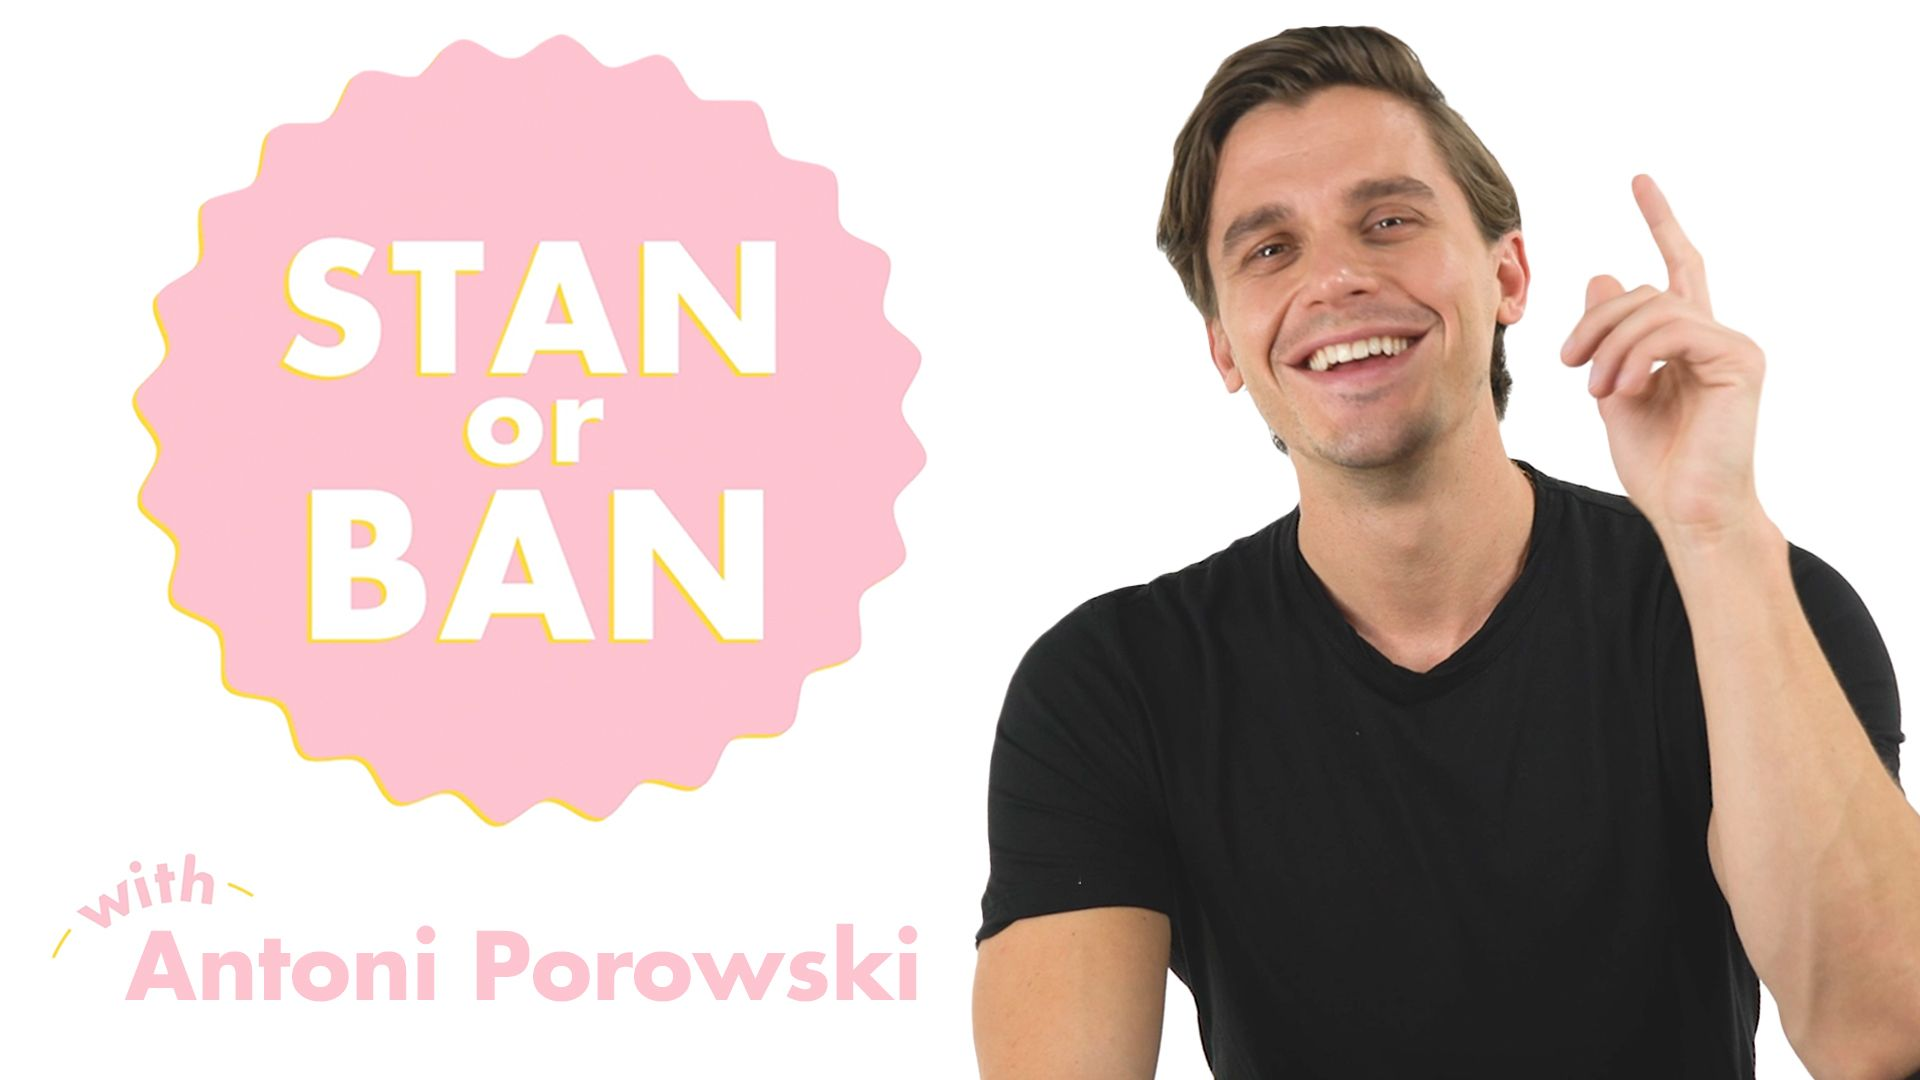 Antoni Porowski from Queer Eye's savage opinion on Ariana, Miley and Lana's song